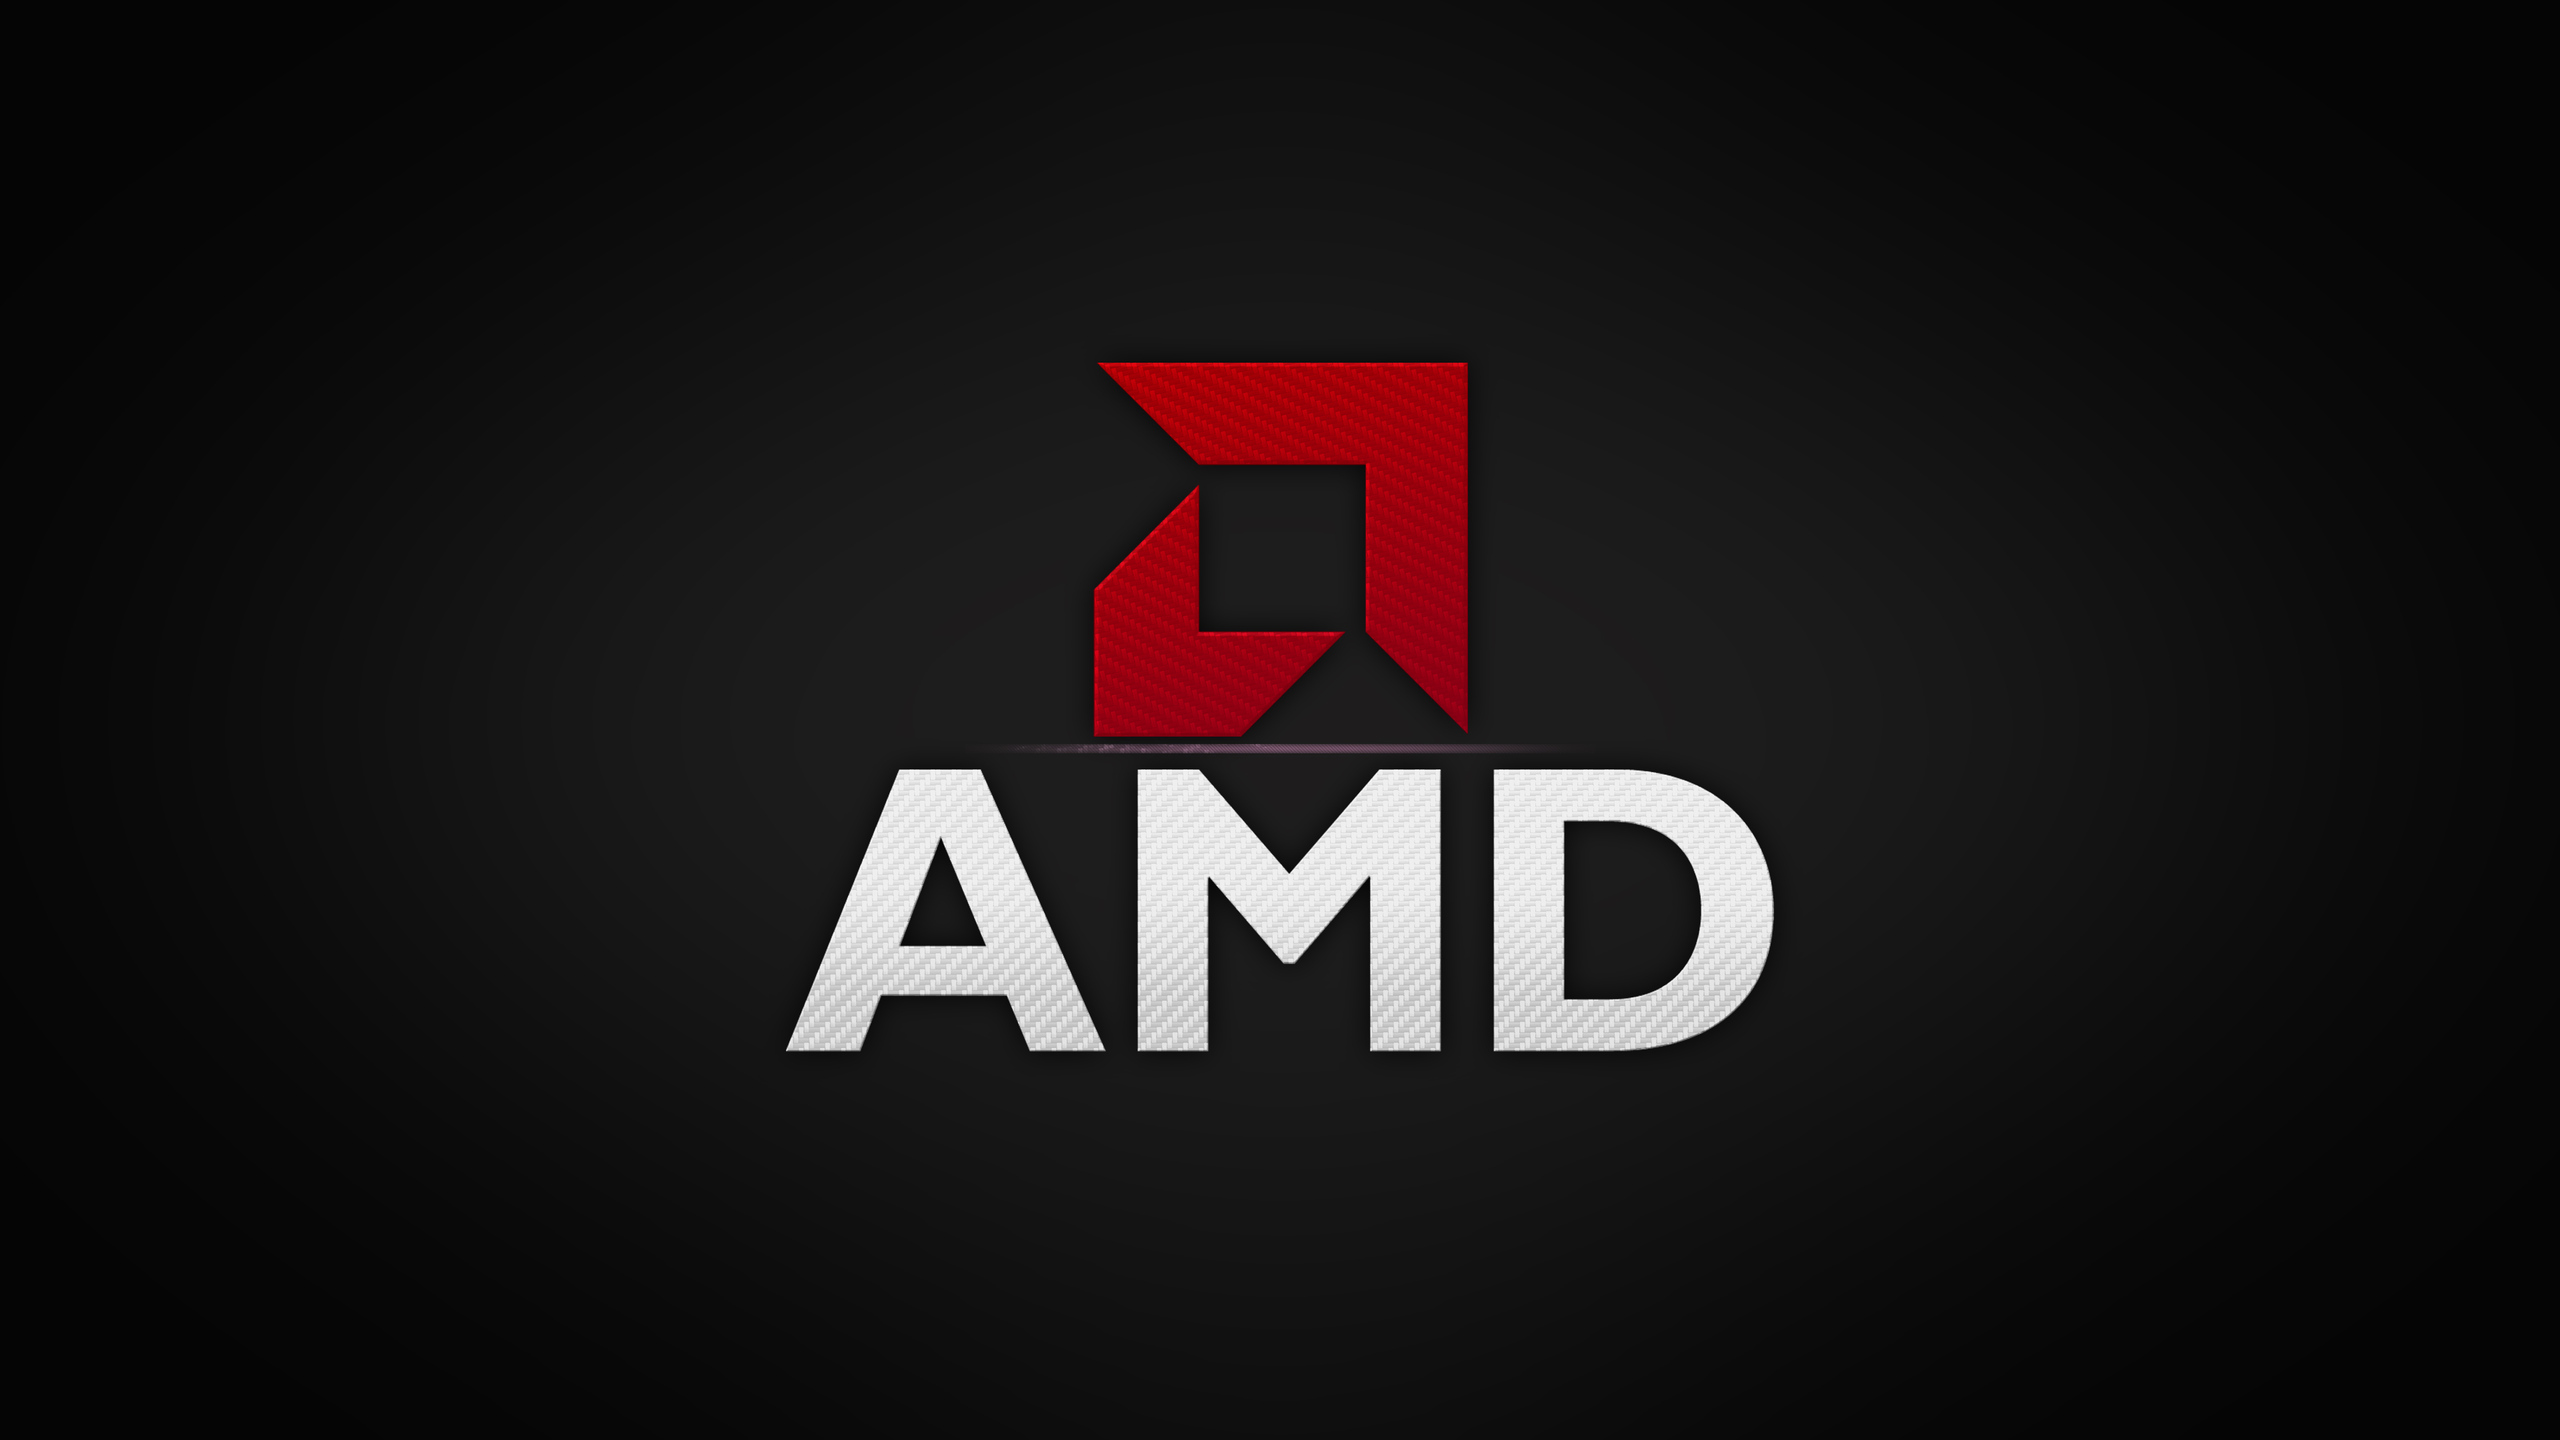 2560x1440 Amd 4k 1440p Resolution Hd 4k Wallpapers Images